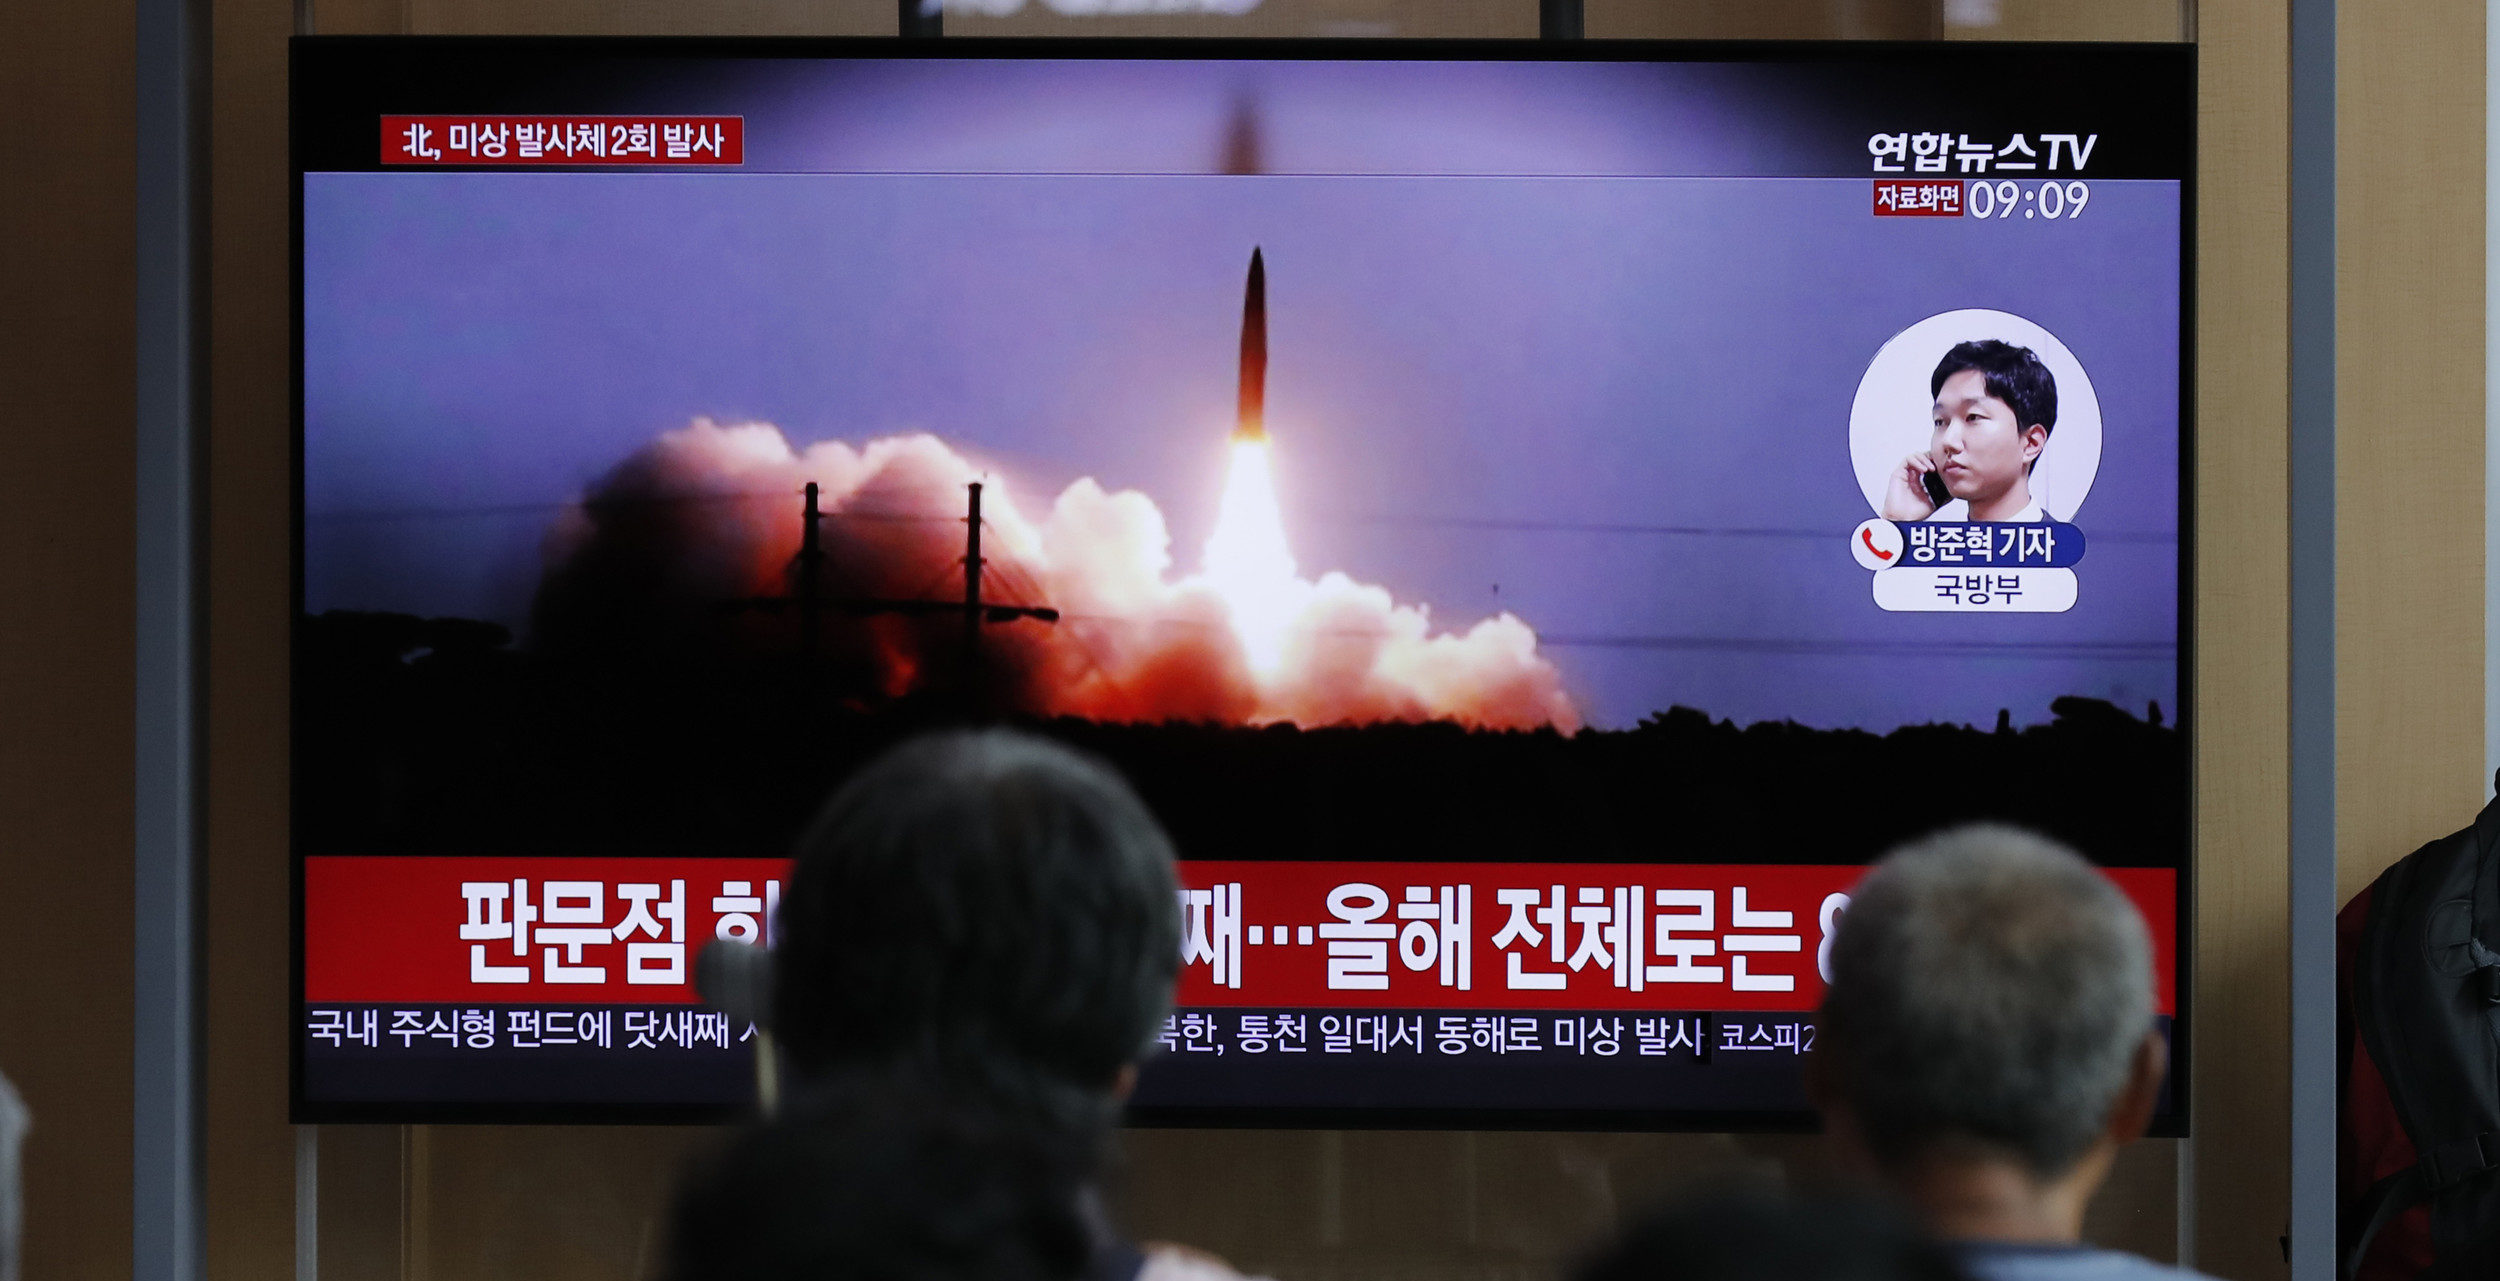 N. Korea fires more projectiles, rules out talks with South